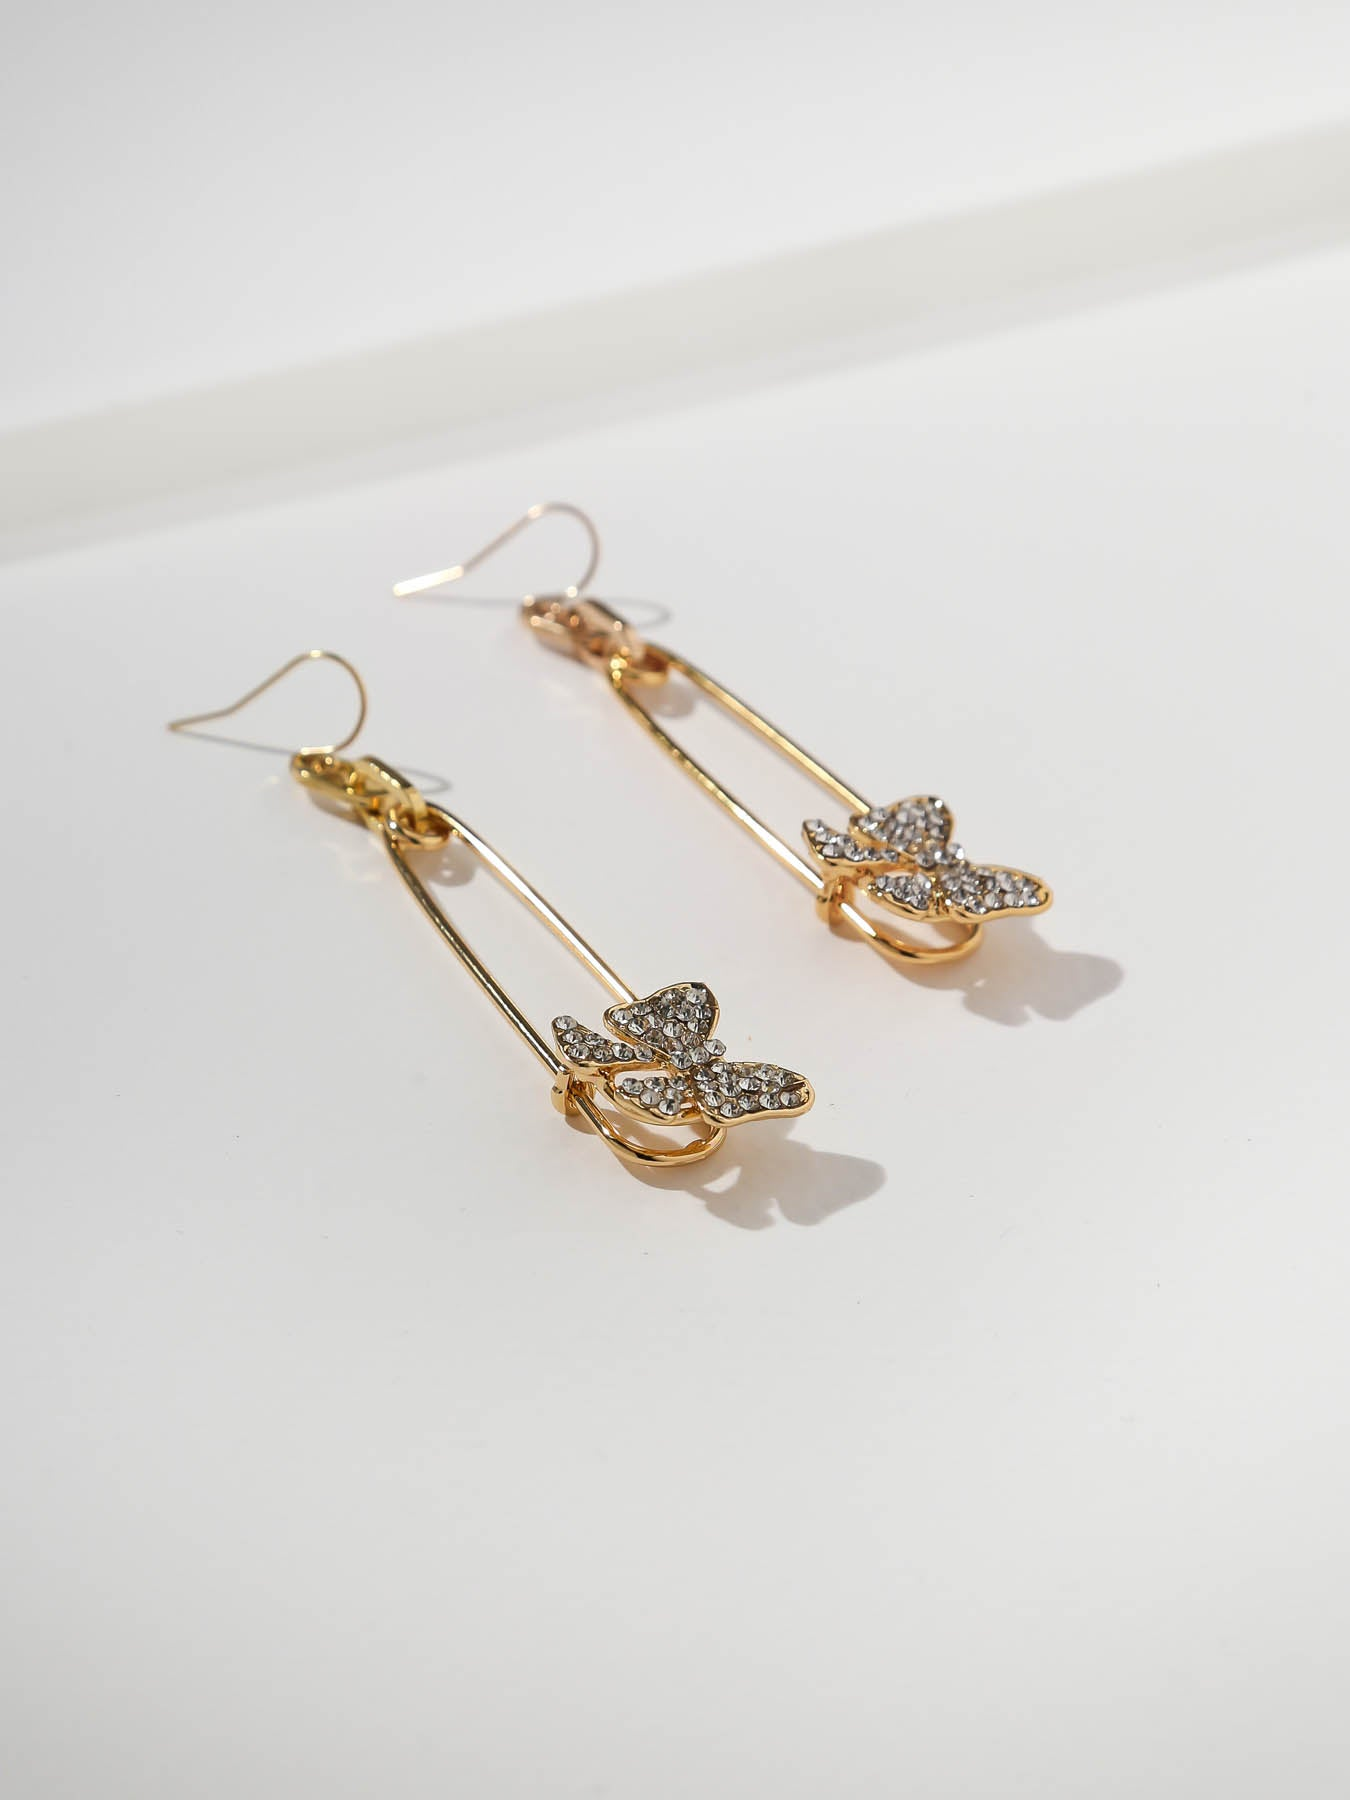 The Crystal Cora Earrings